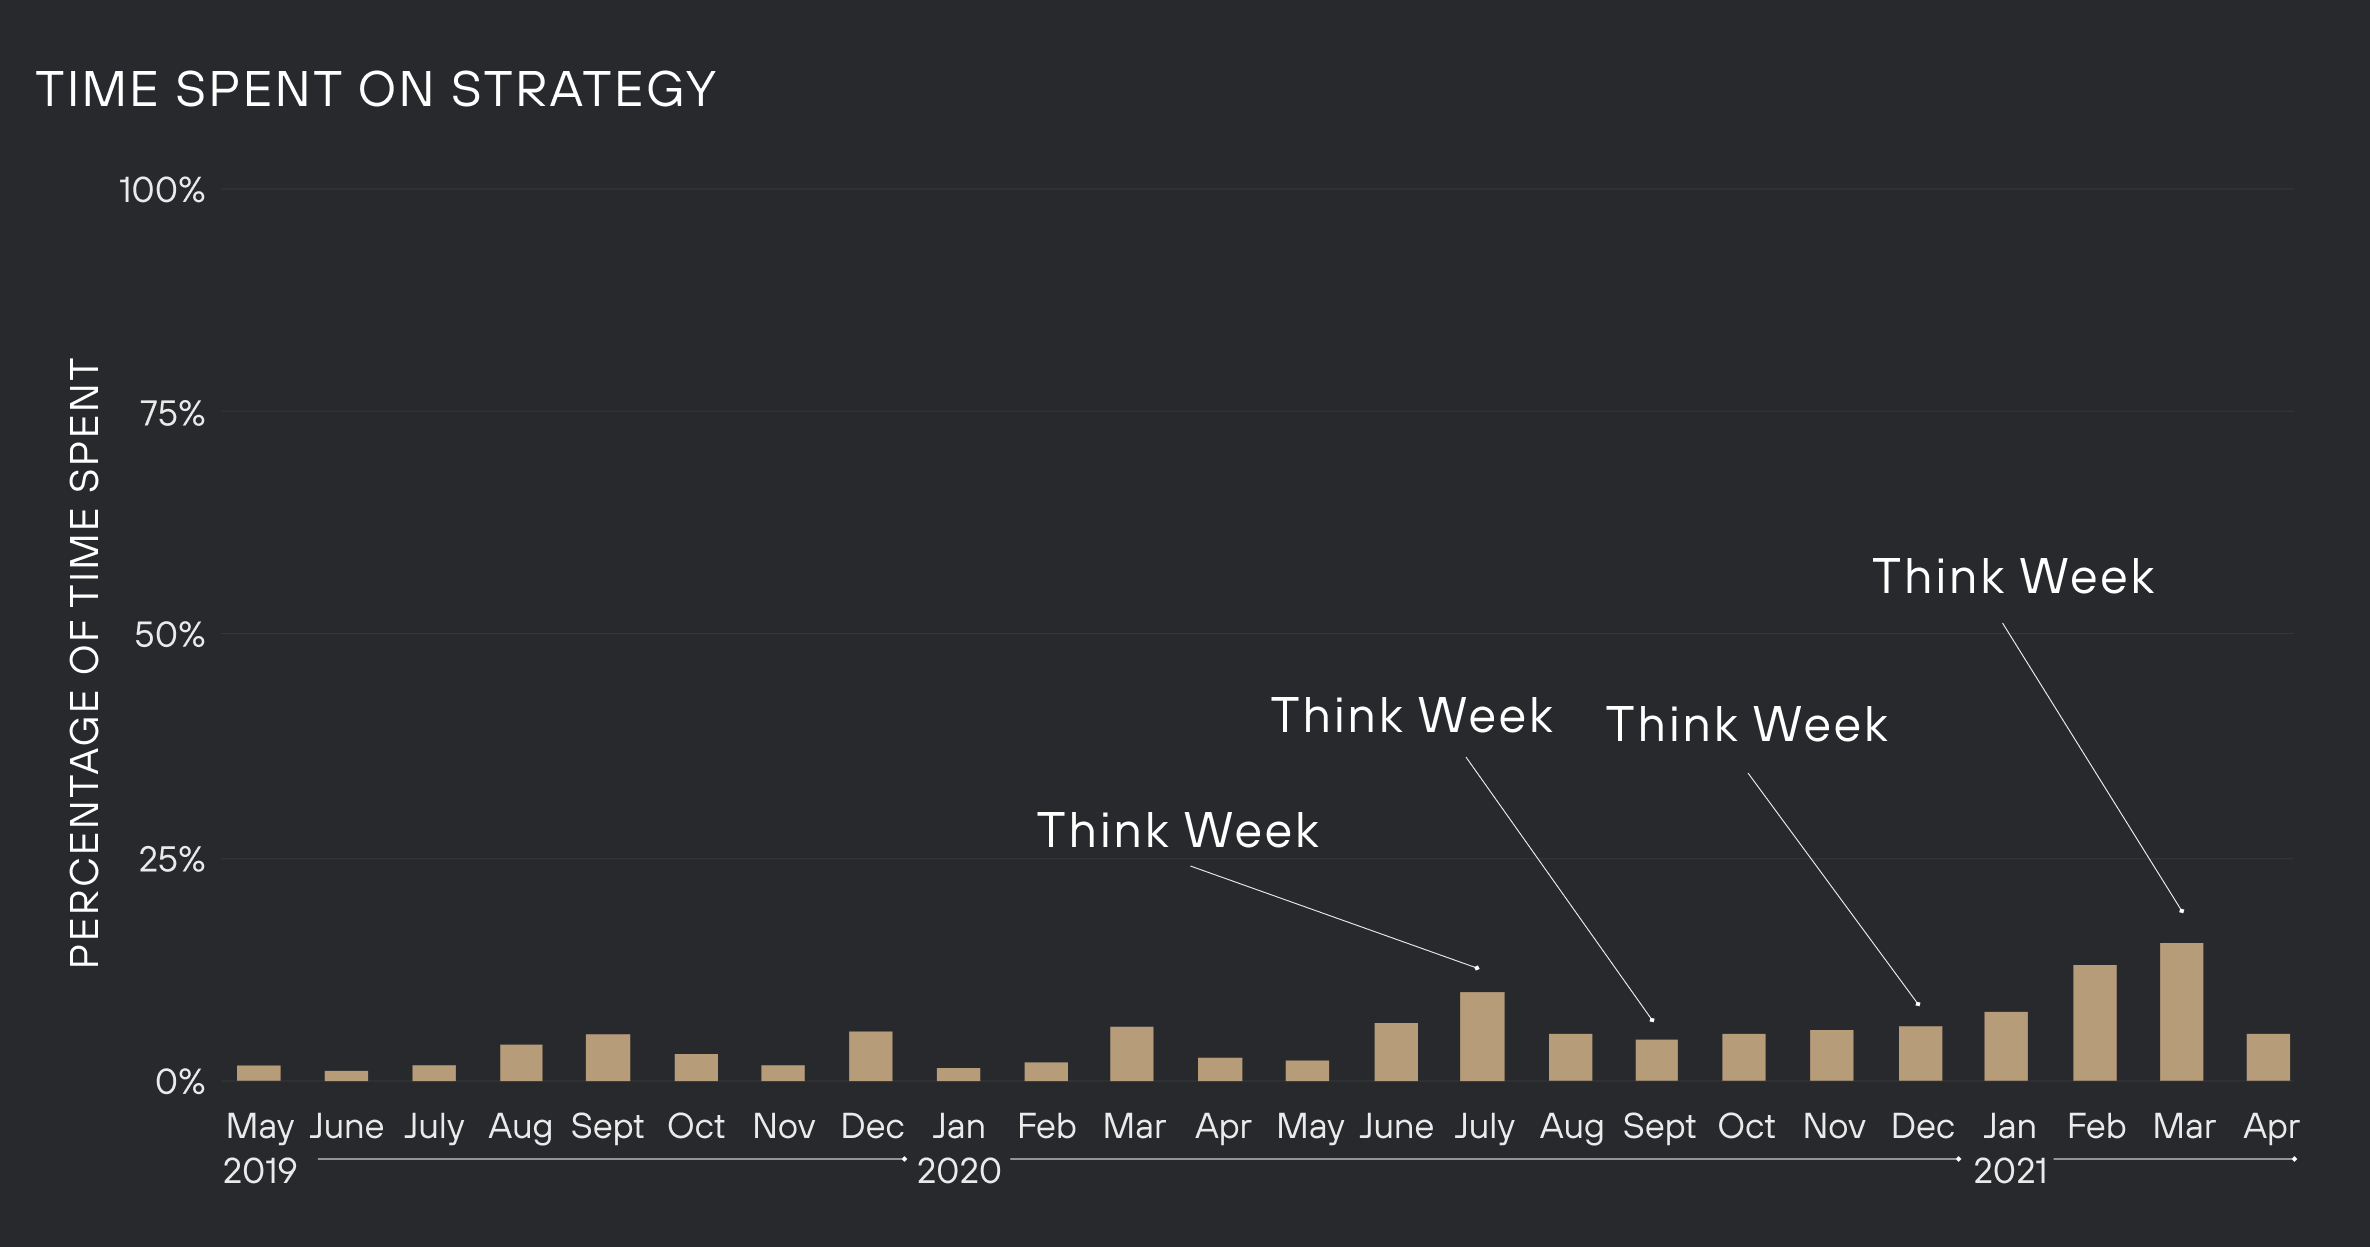 Graph of time spent on strategy